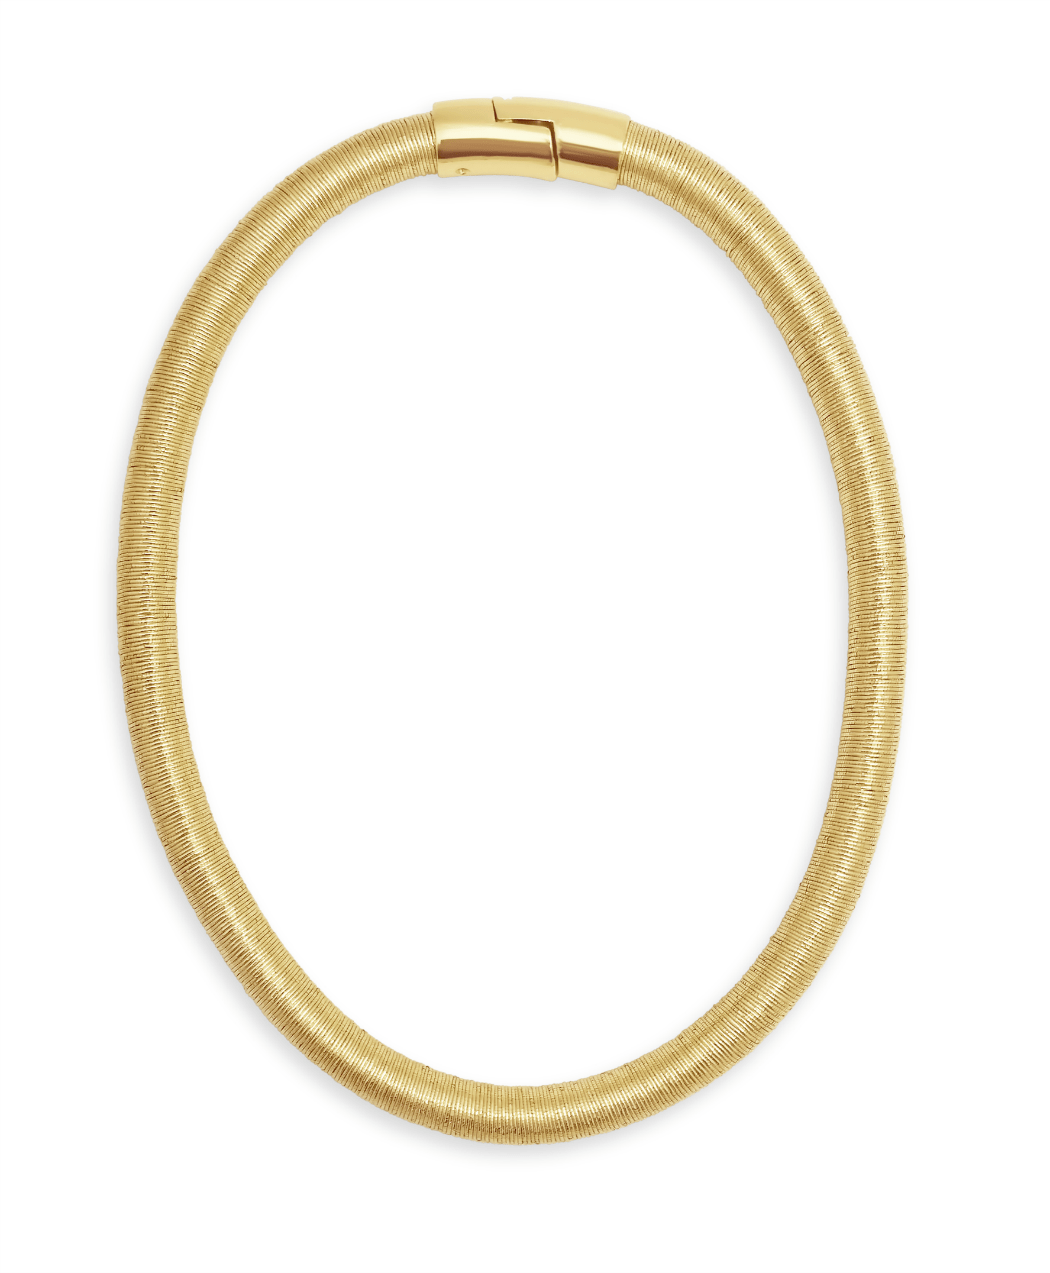 Gold Coiled Necklace